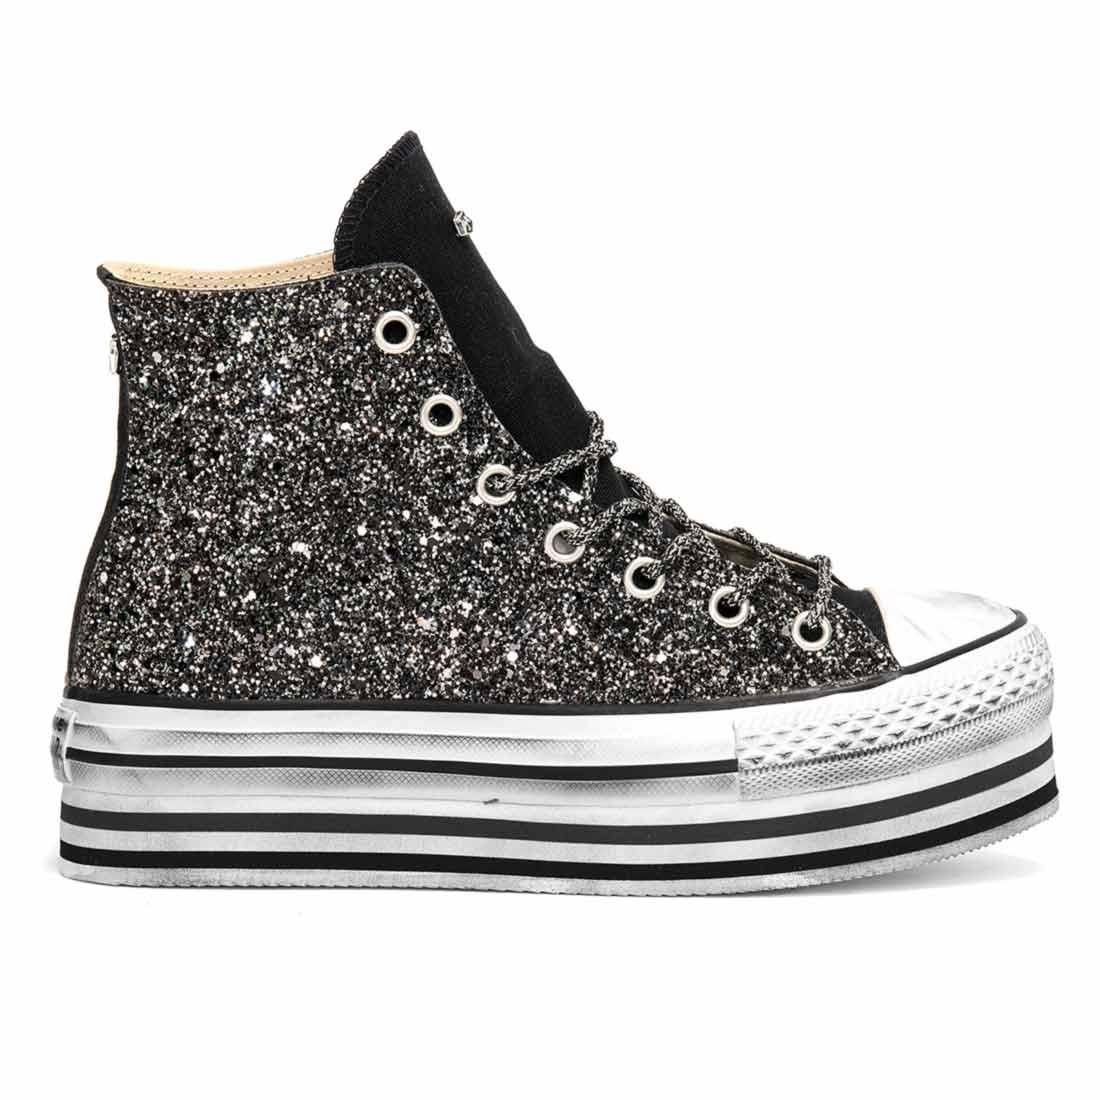 converse all star con brillantini neri e suola alta pltaform a righe